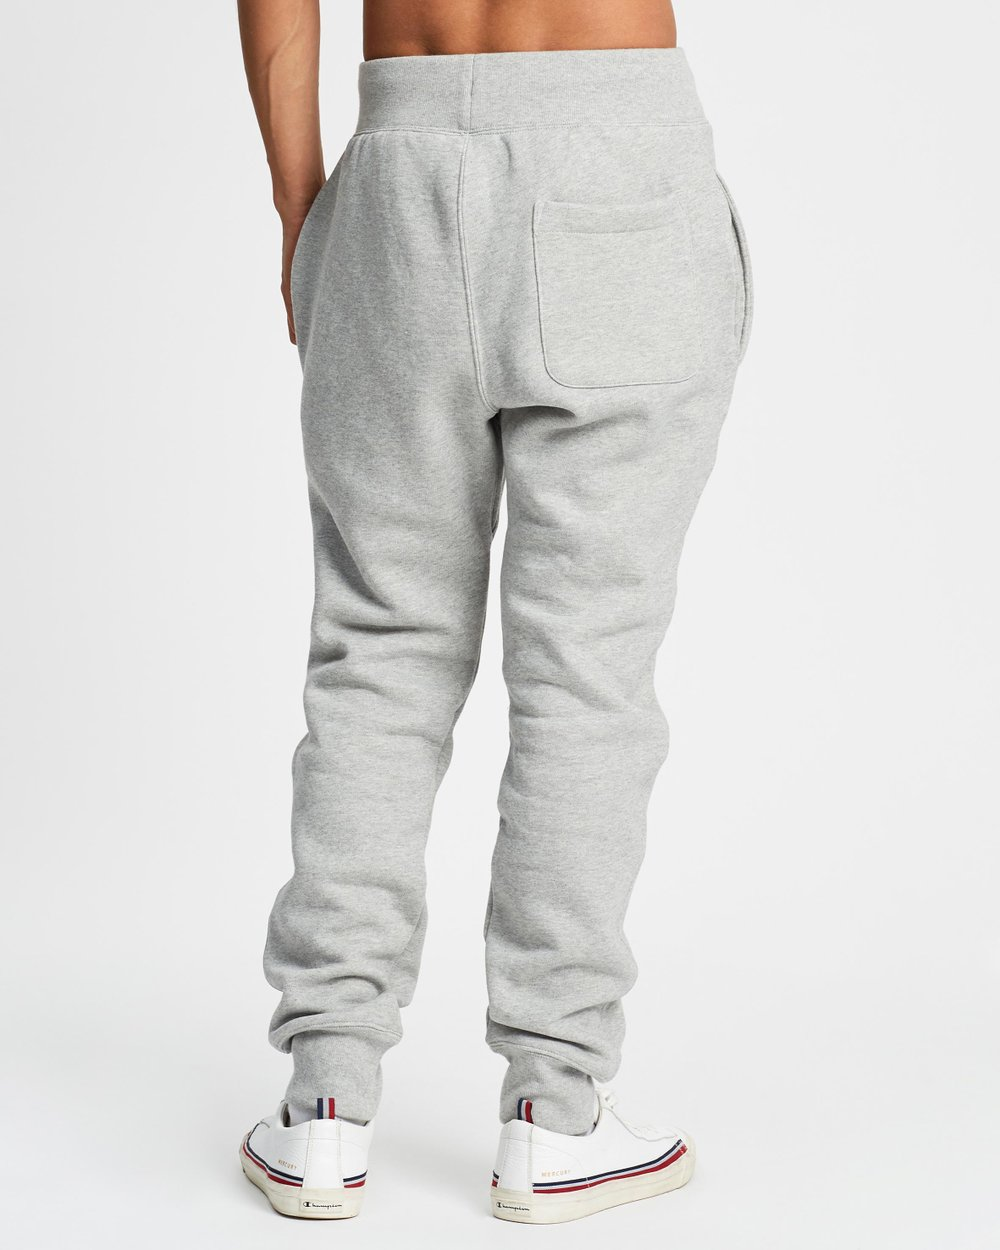 34a9f8a26d7 Reverse Weave Trim Joggers by Champion Life Online